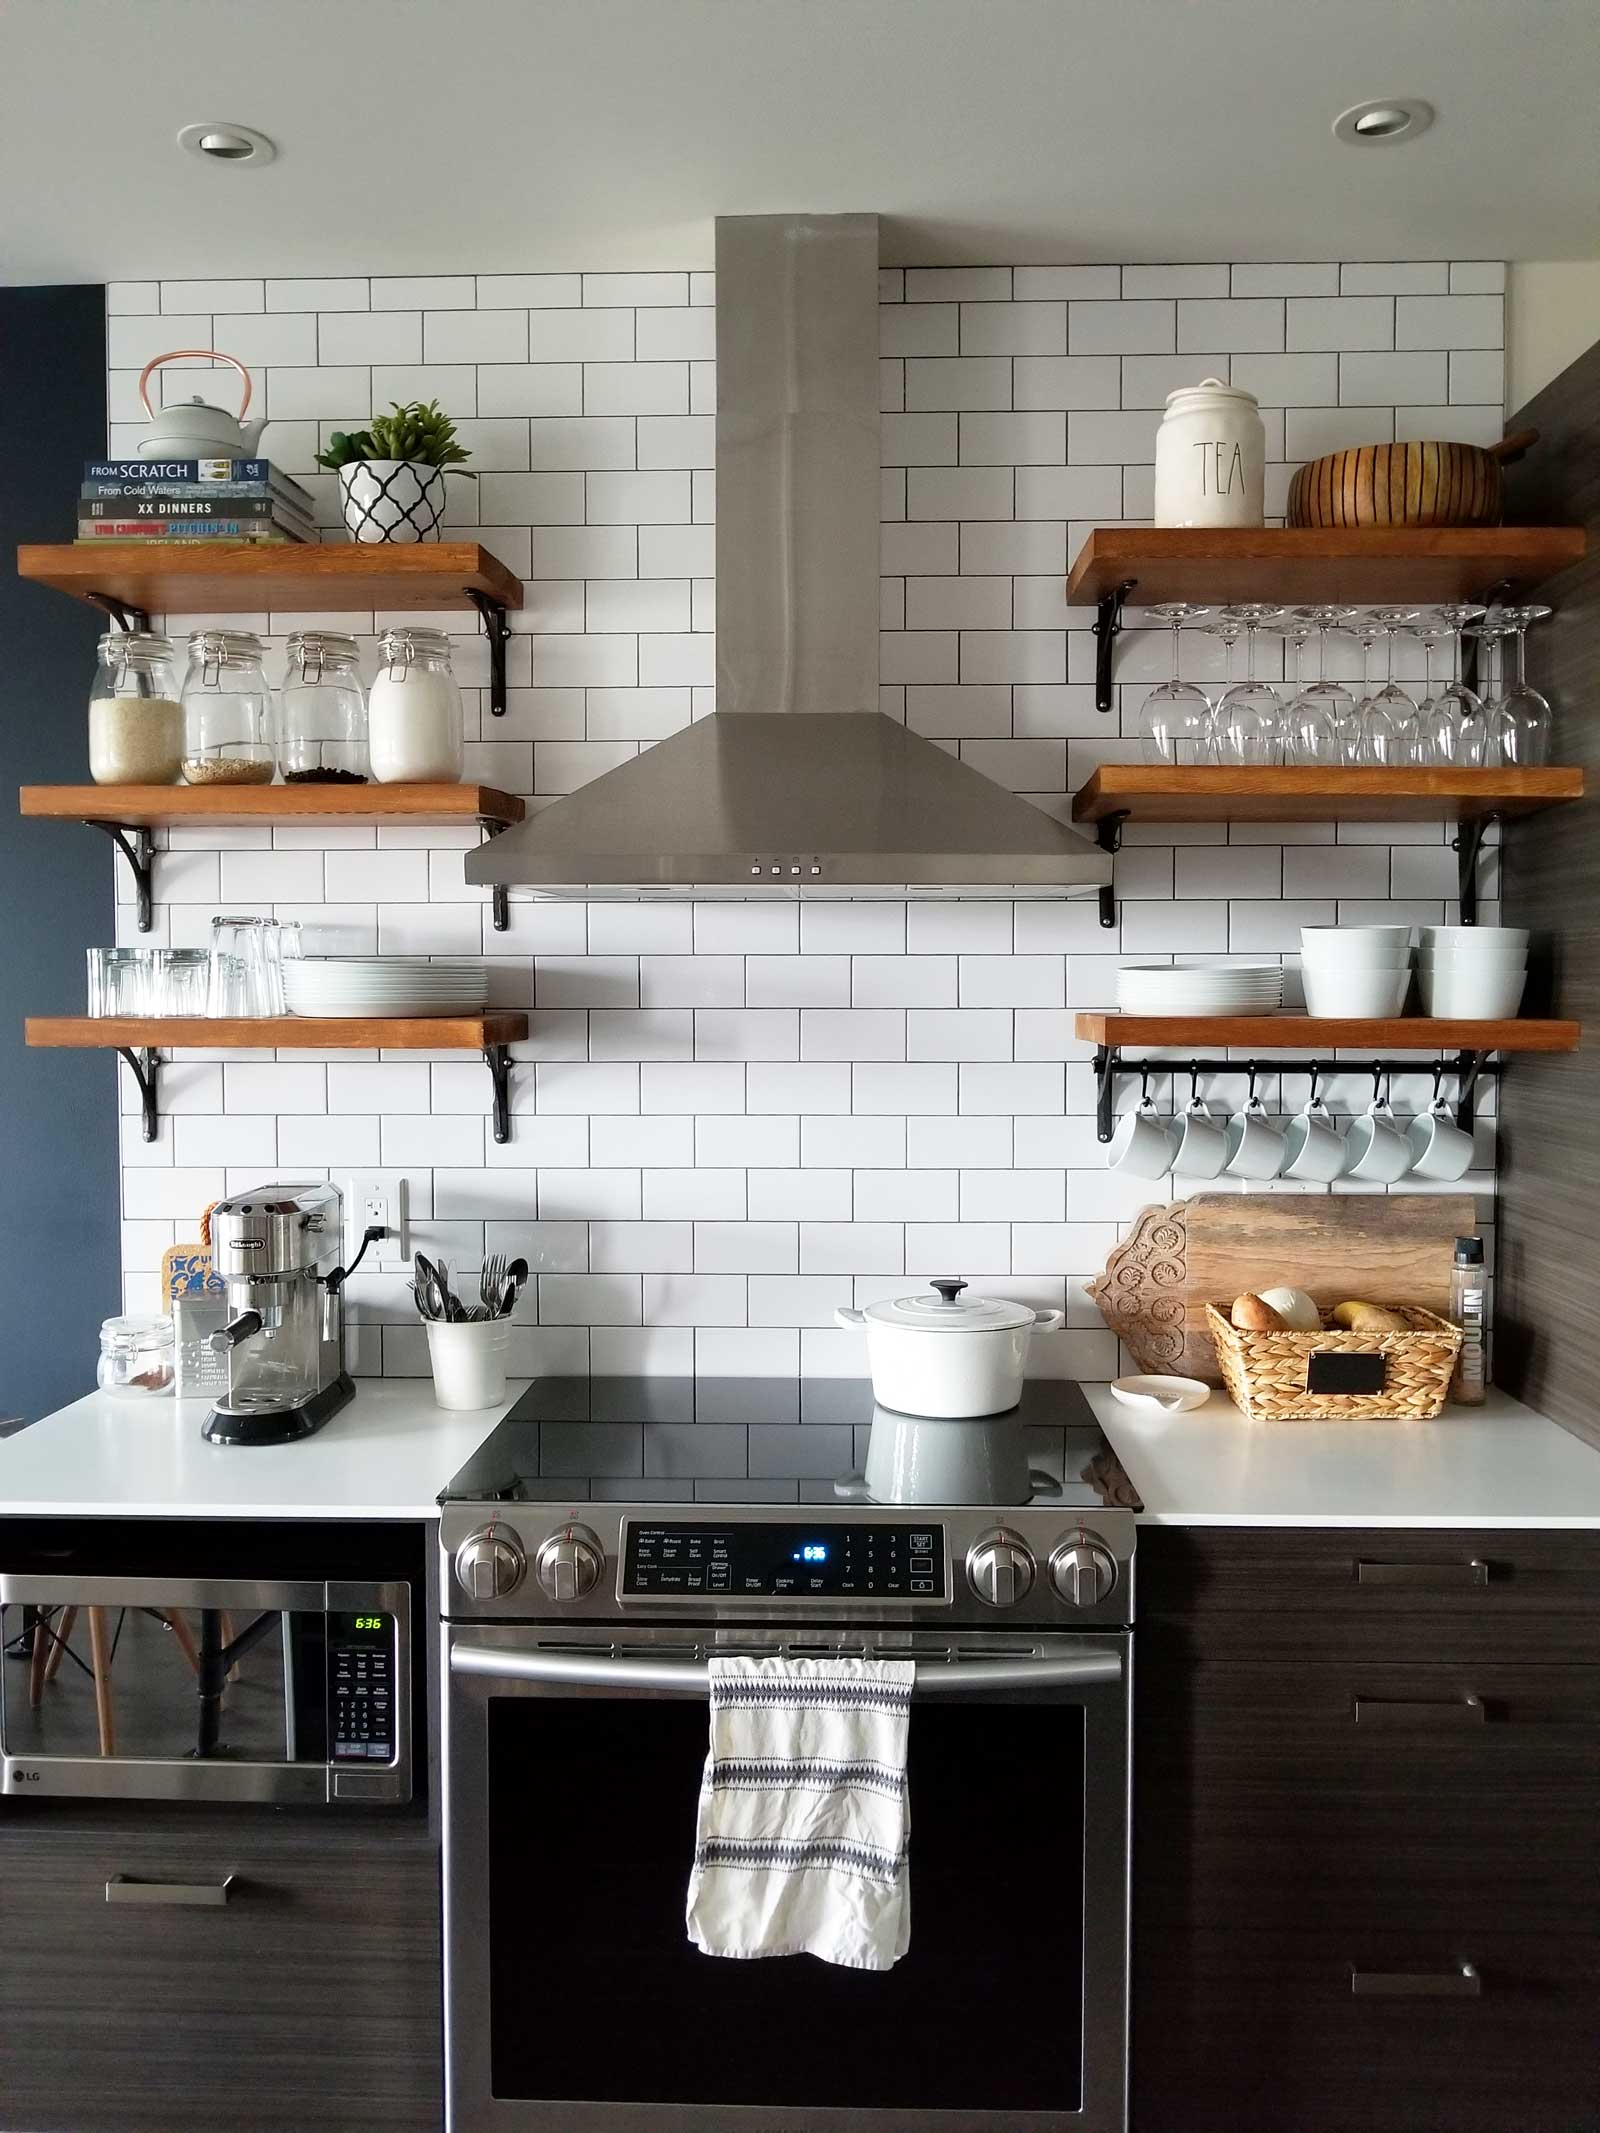 Loving the open shelving in this modern/industrial kitchen. It's a small space that looks beautiful. See the full home tour on www.lovetohome.co.uk